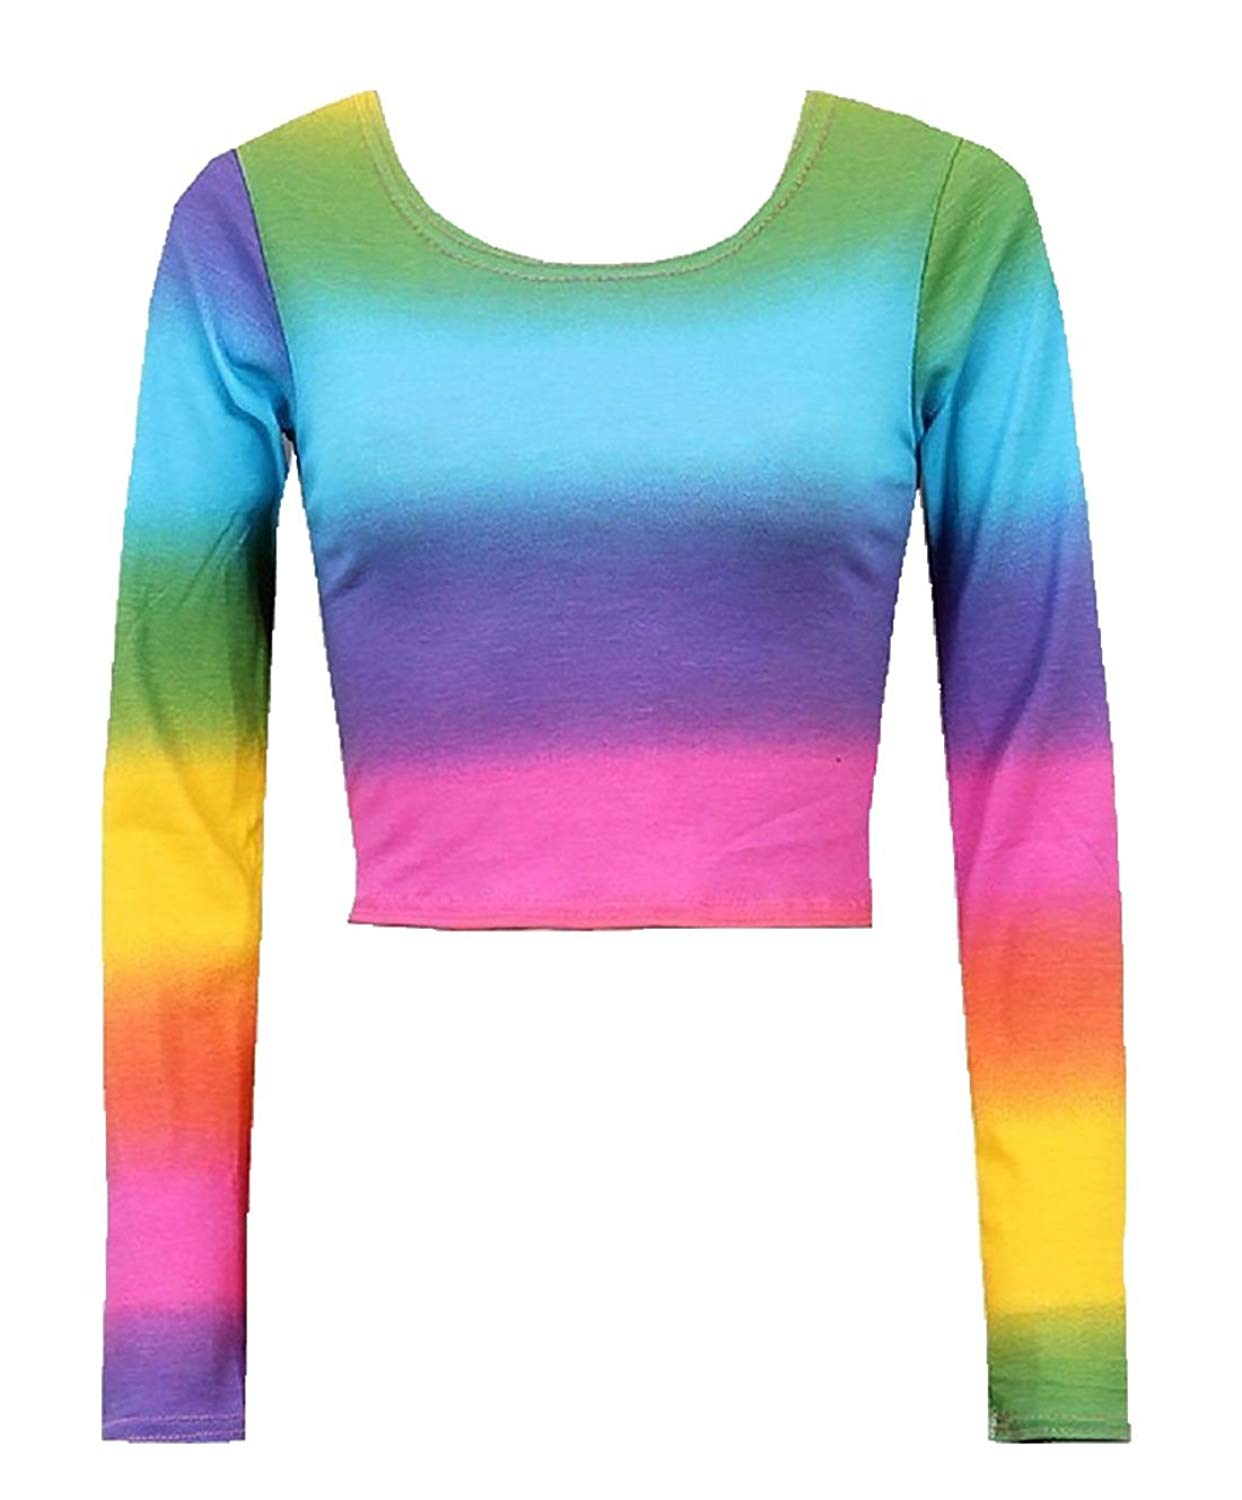 Rimi Hanger Womens Long Sleeve Rainbow Print Crop Top Ladies Multi Colour Round Neck Fancy Party Top S/L